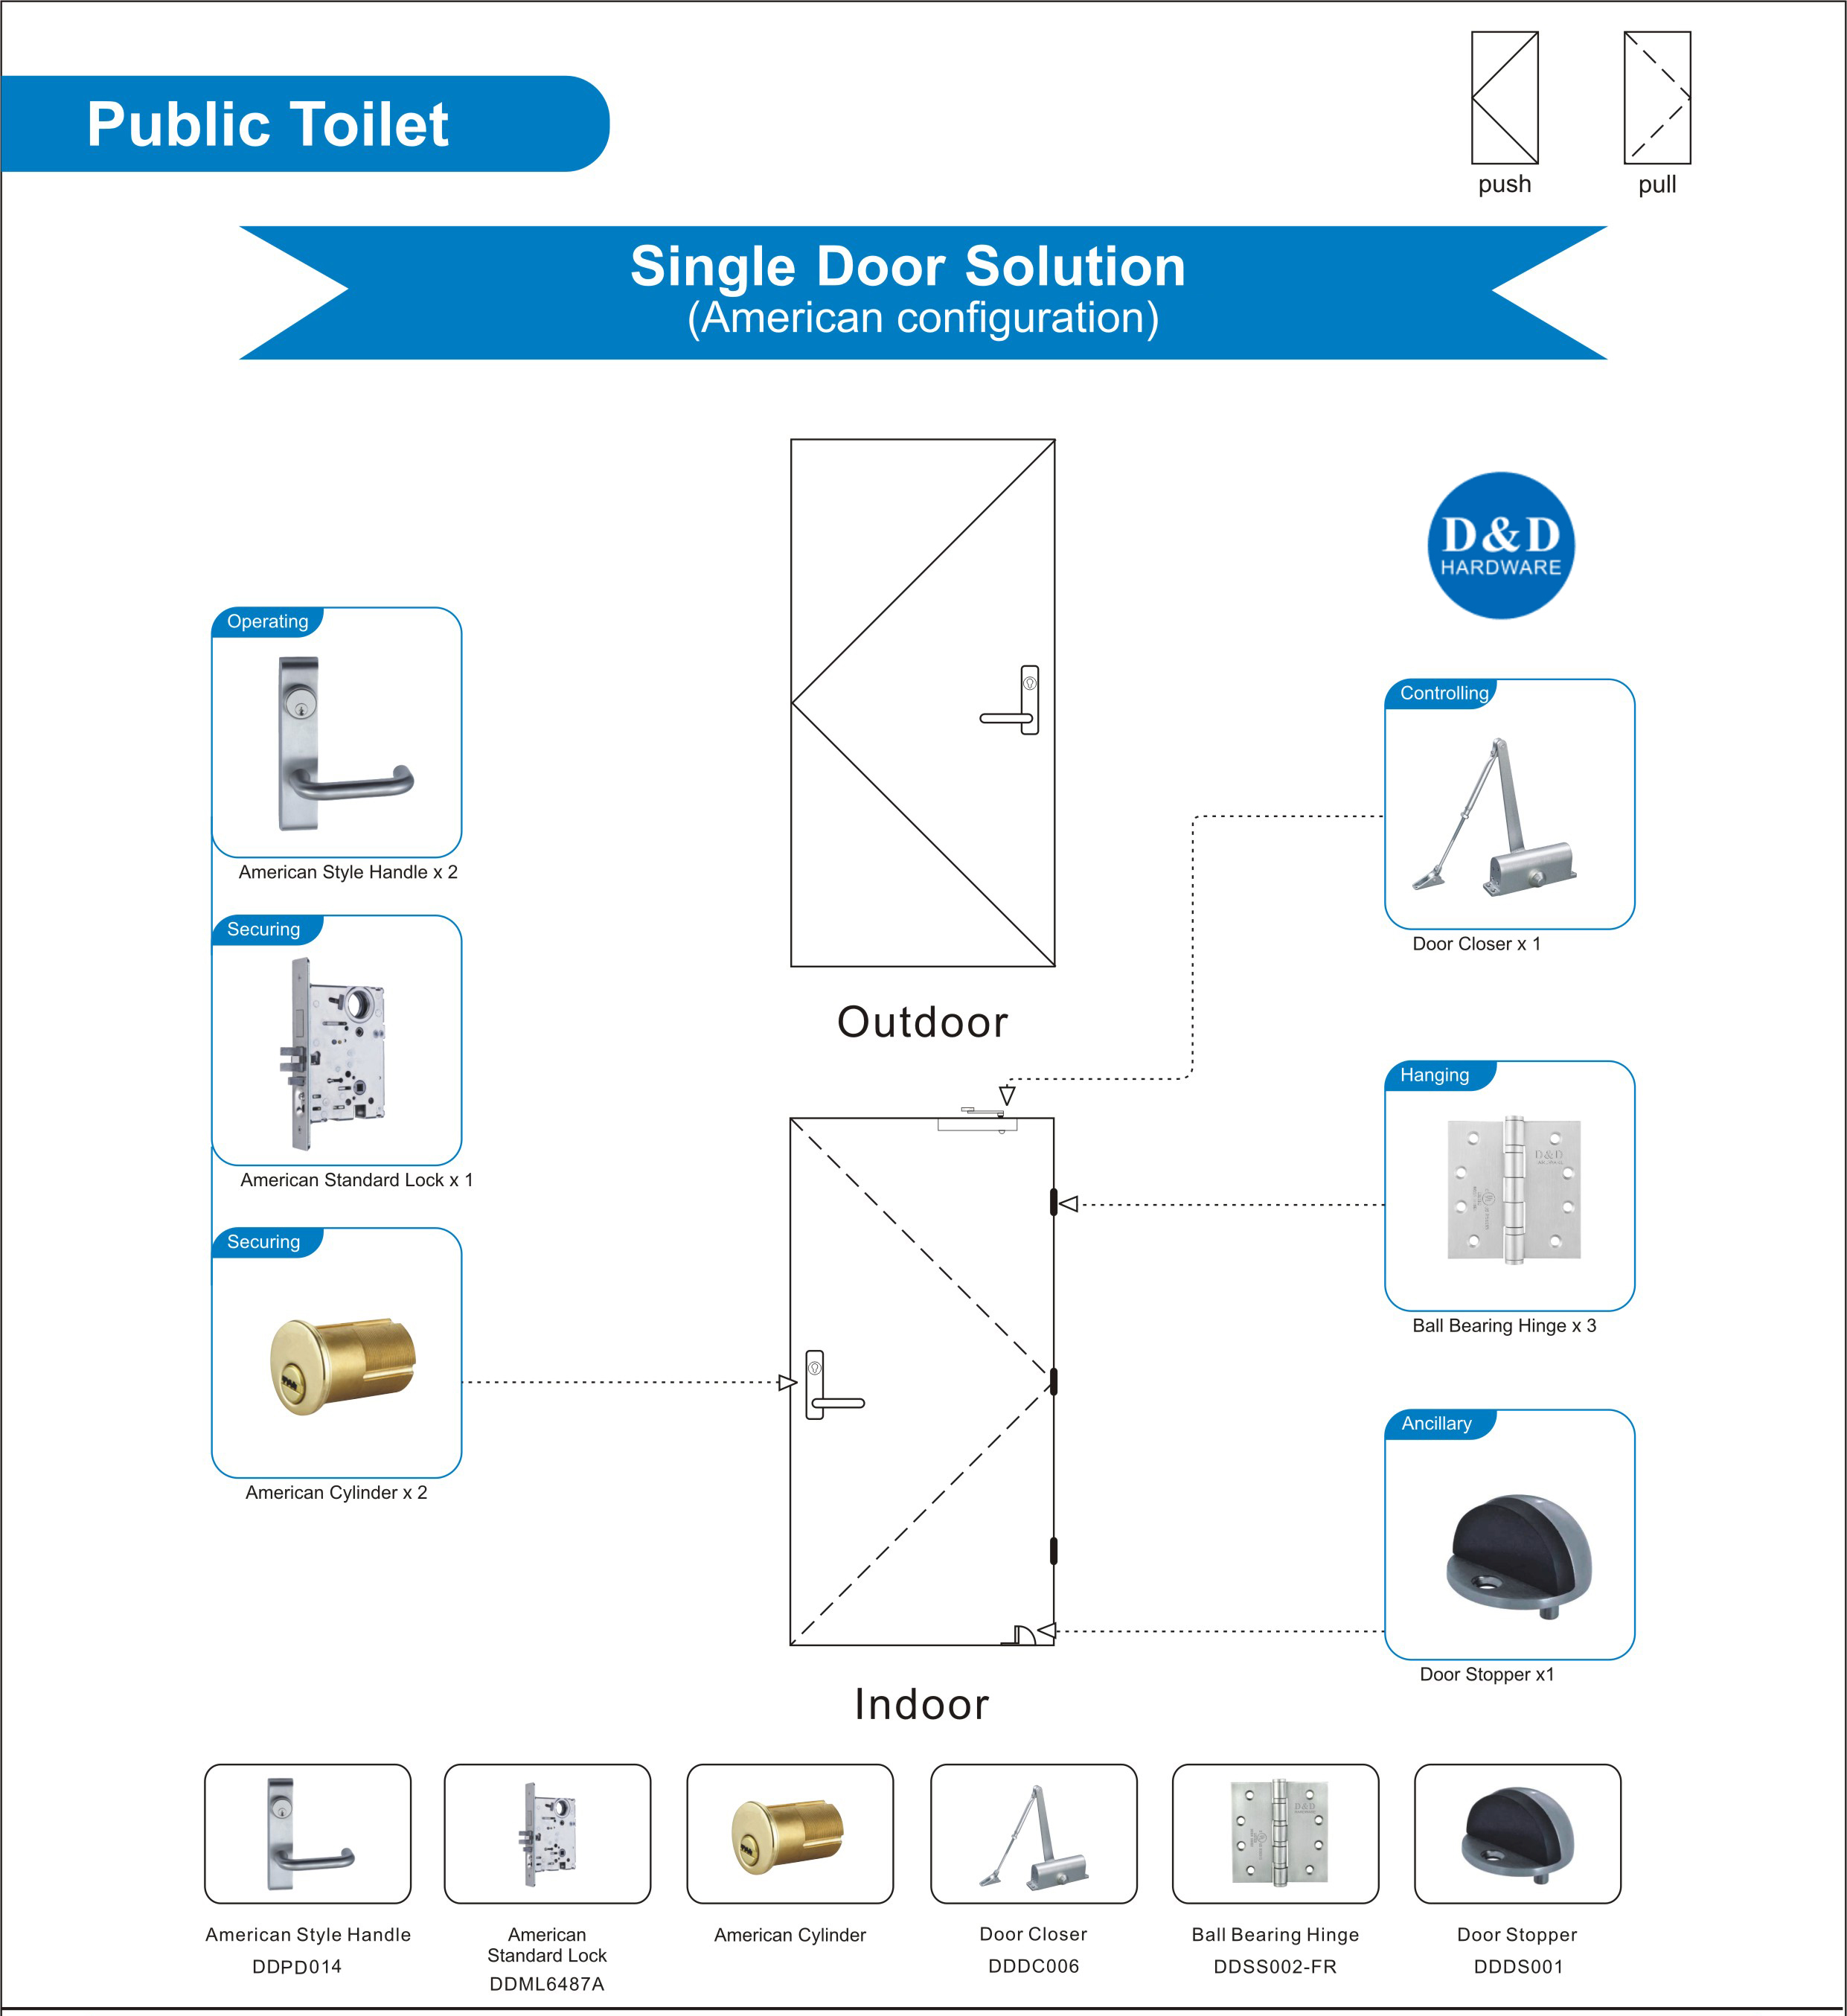 Architecture Door Opening Solution for Public Toilet Single Door